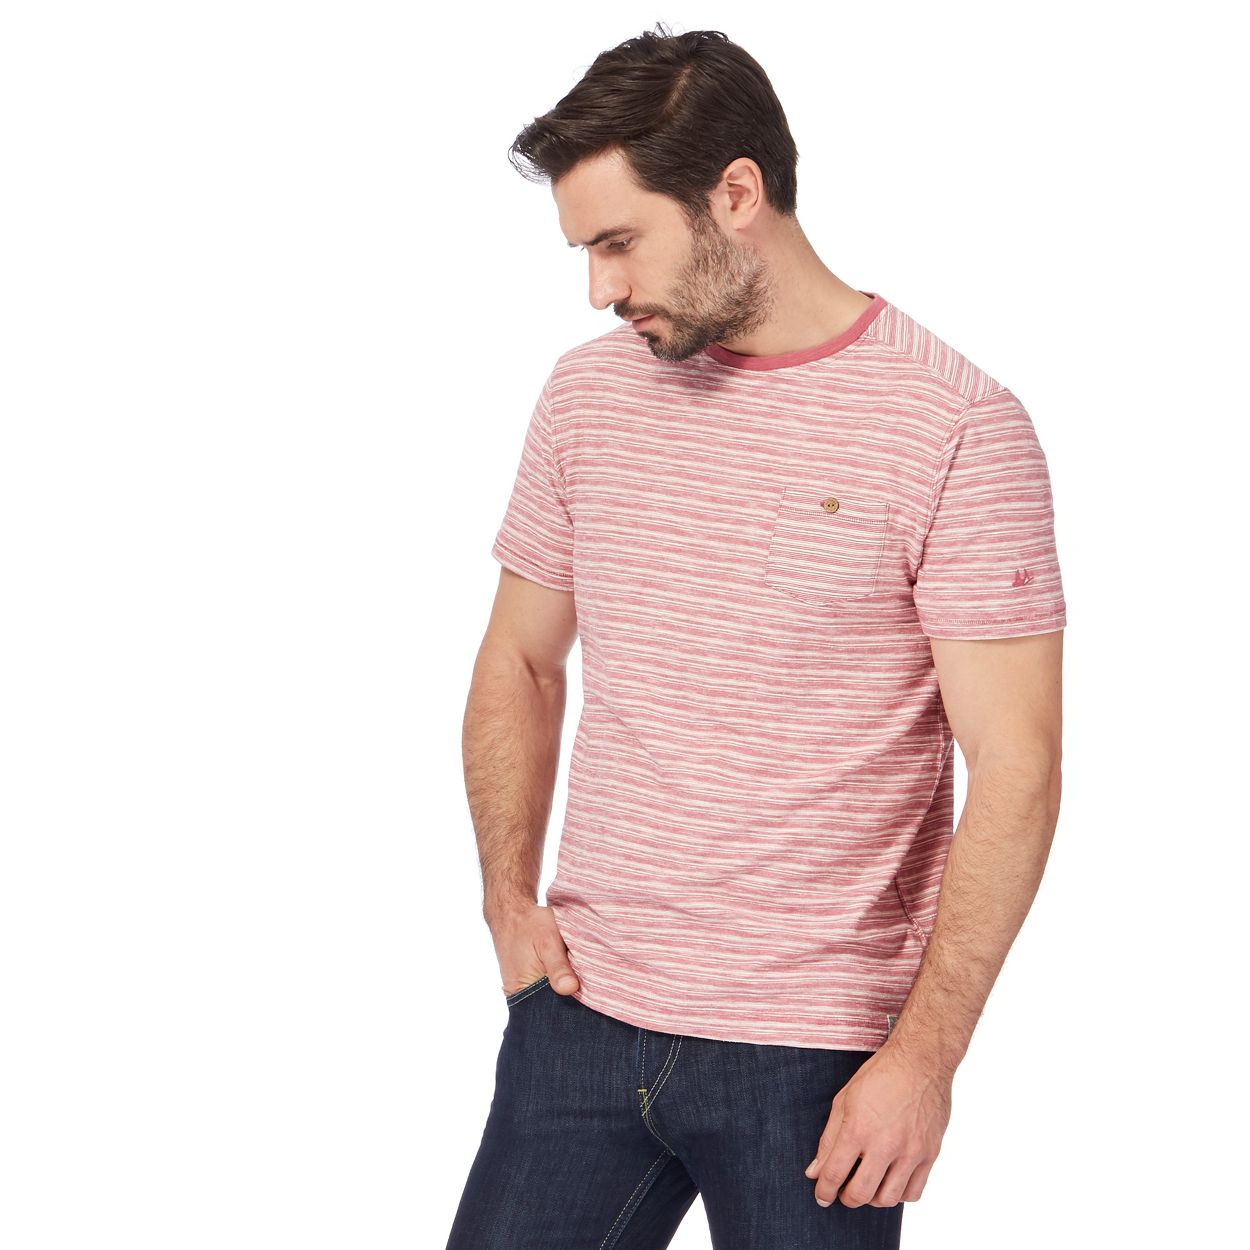 Mantaray Pink striped t-shirt